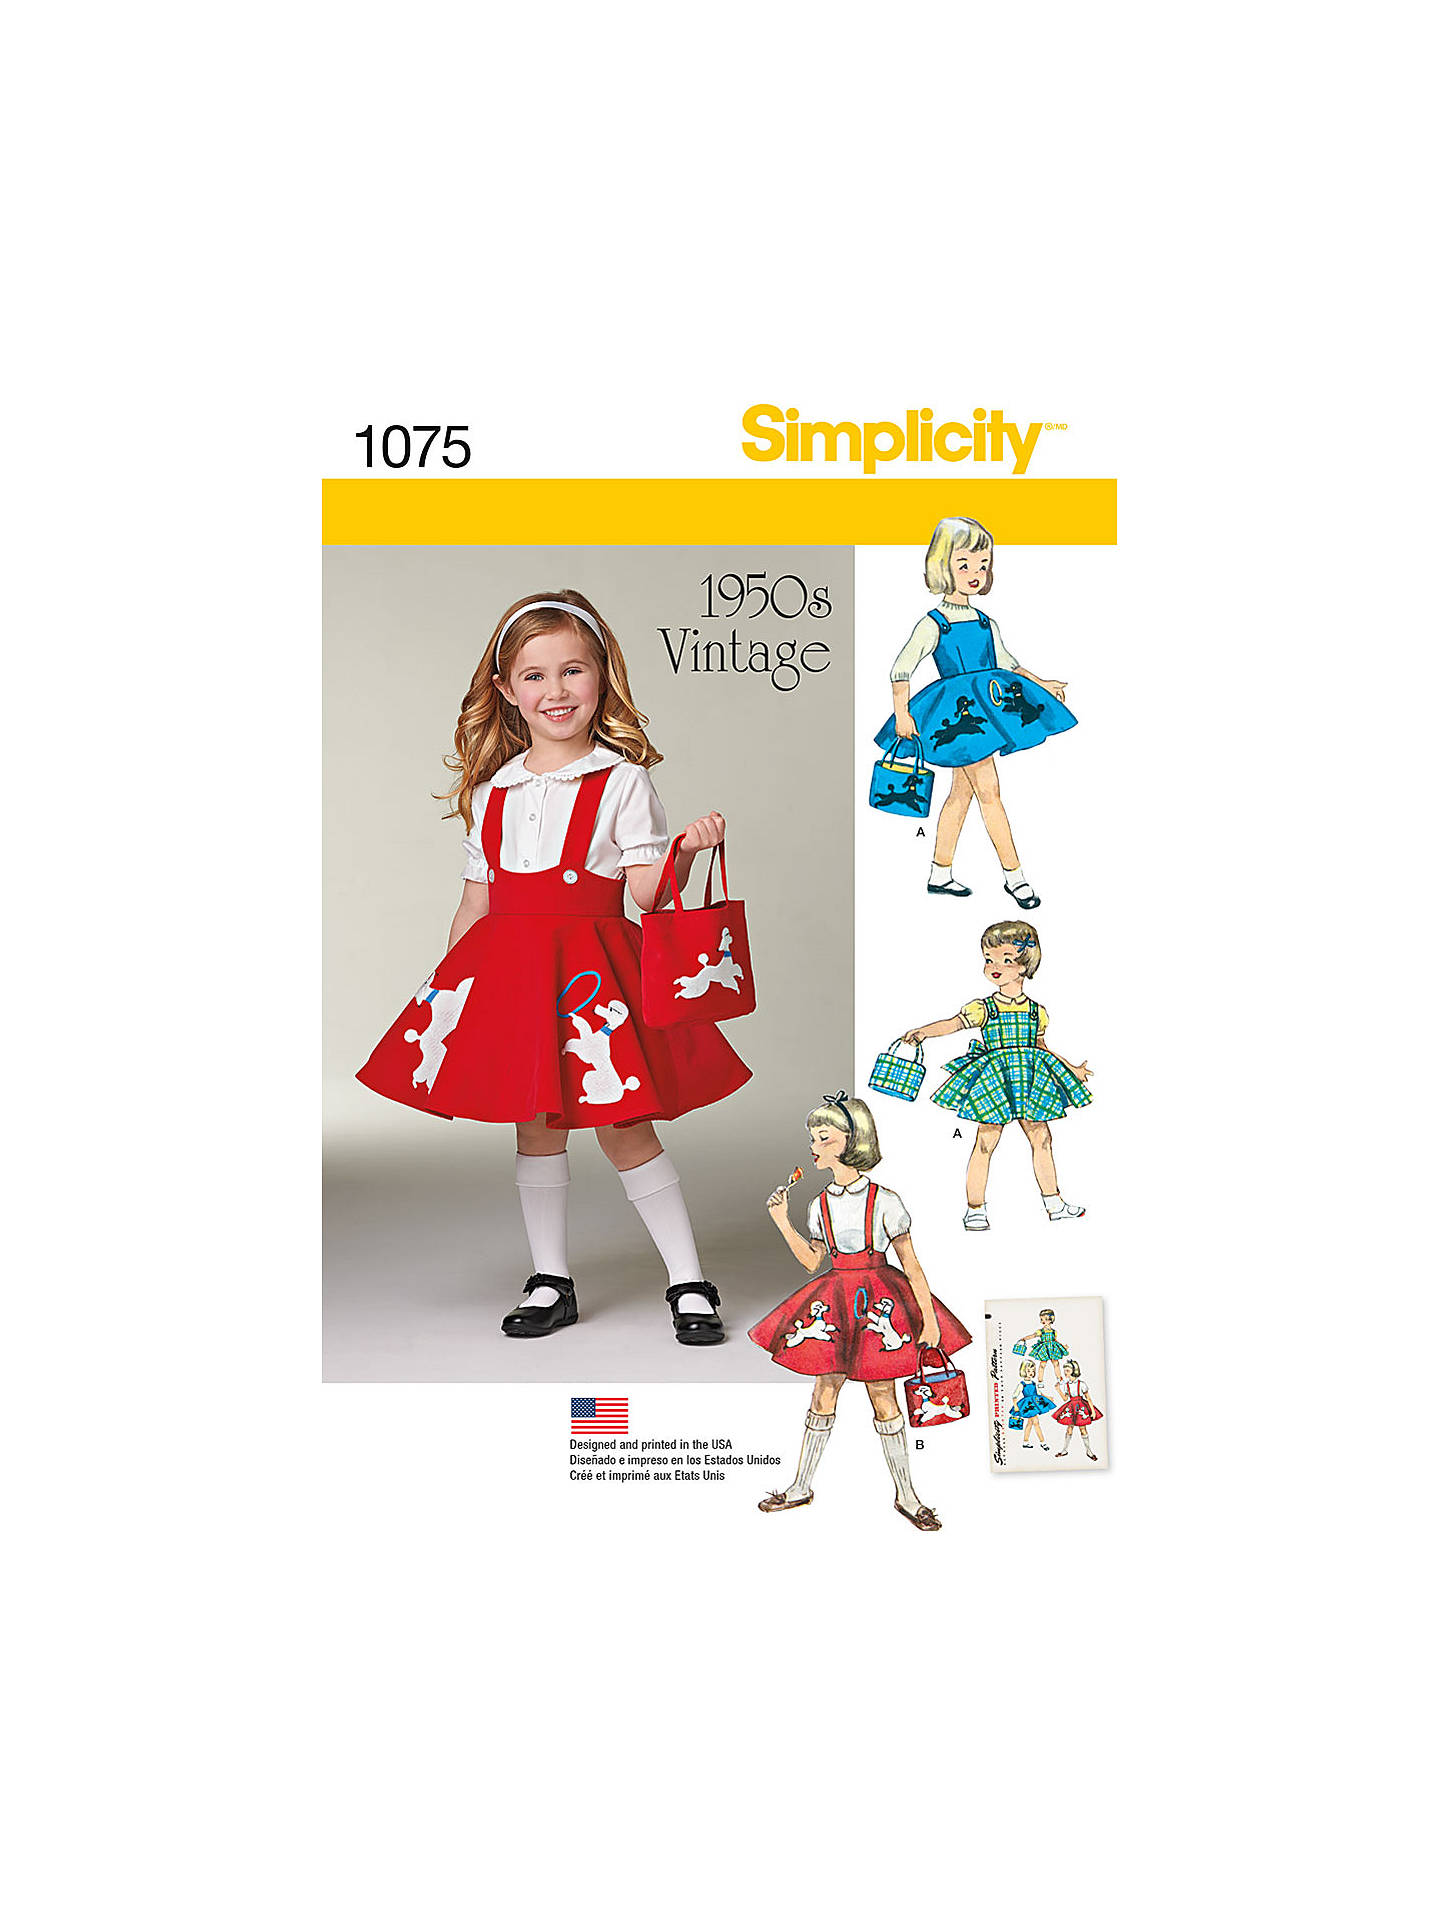 Simplicity Children\'s Vintage 1950s Sewing Pattern, 1075 at John ...